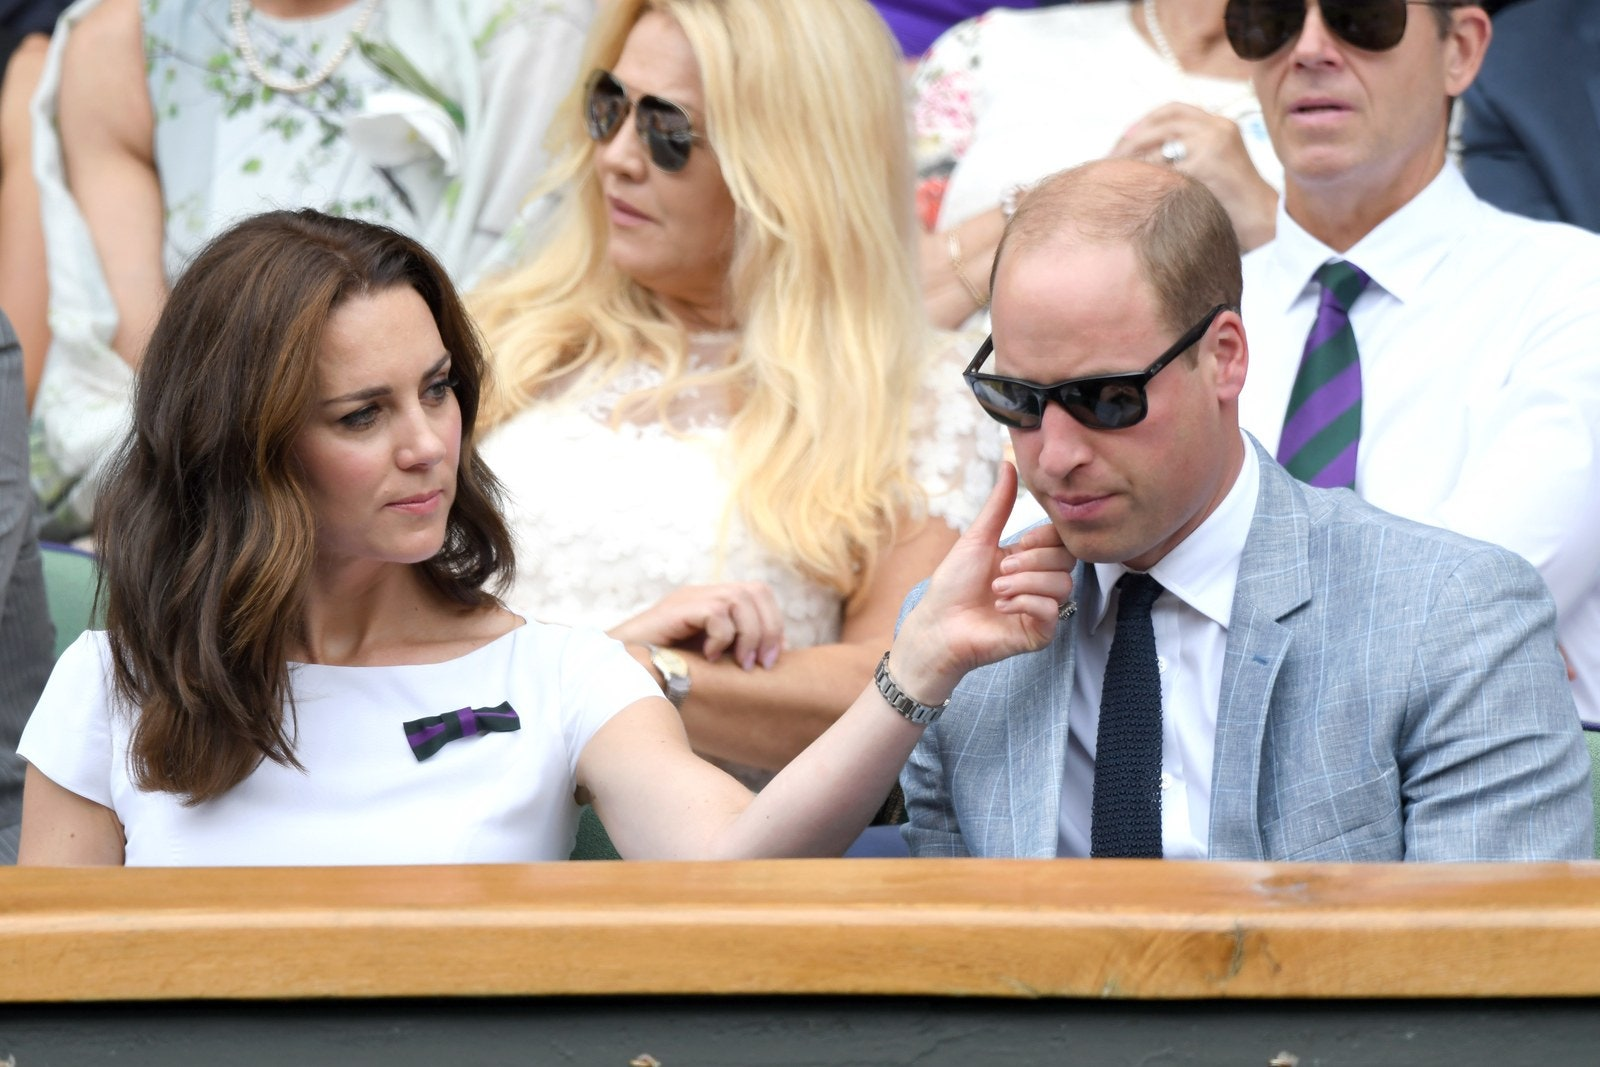 Kate Middleton and Prince William at Wimbledon 2017.